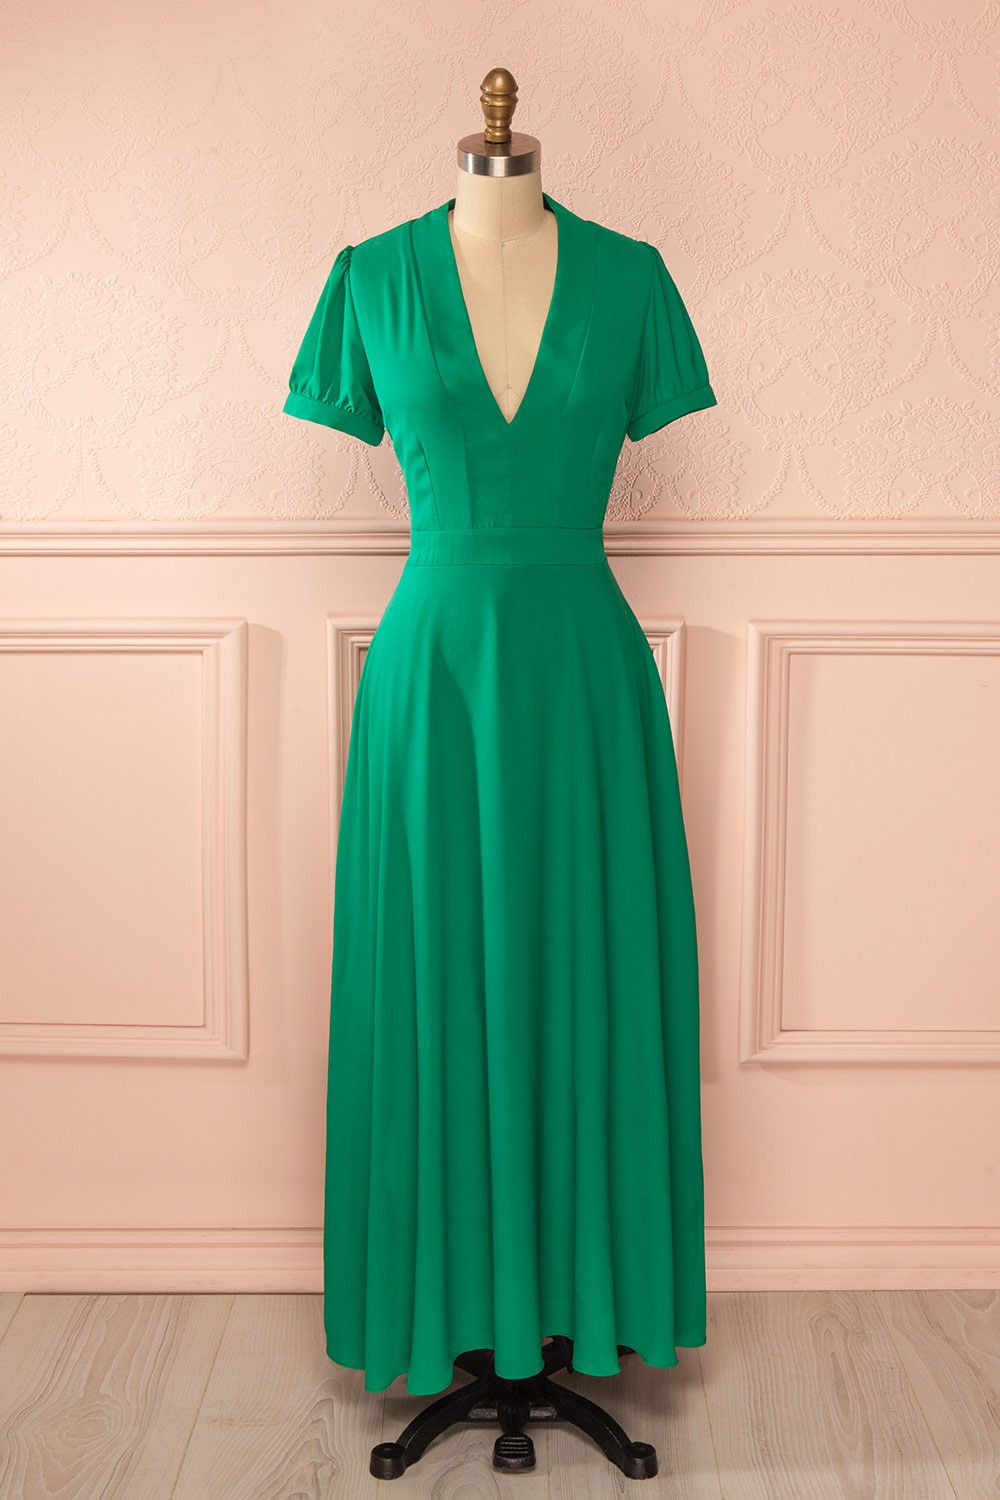 5e2f9dda48 A wind of hope bowed before the graceful youth of your heart. dress,  décolleté, green, longue, low-cut, manches courtes, maxi, robe, ...